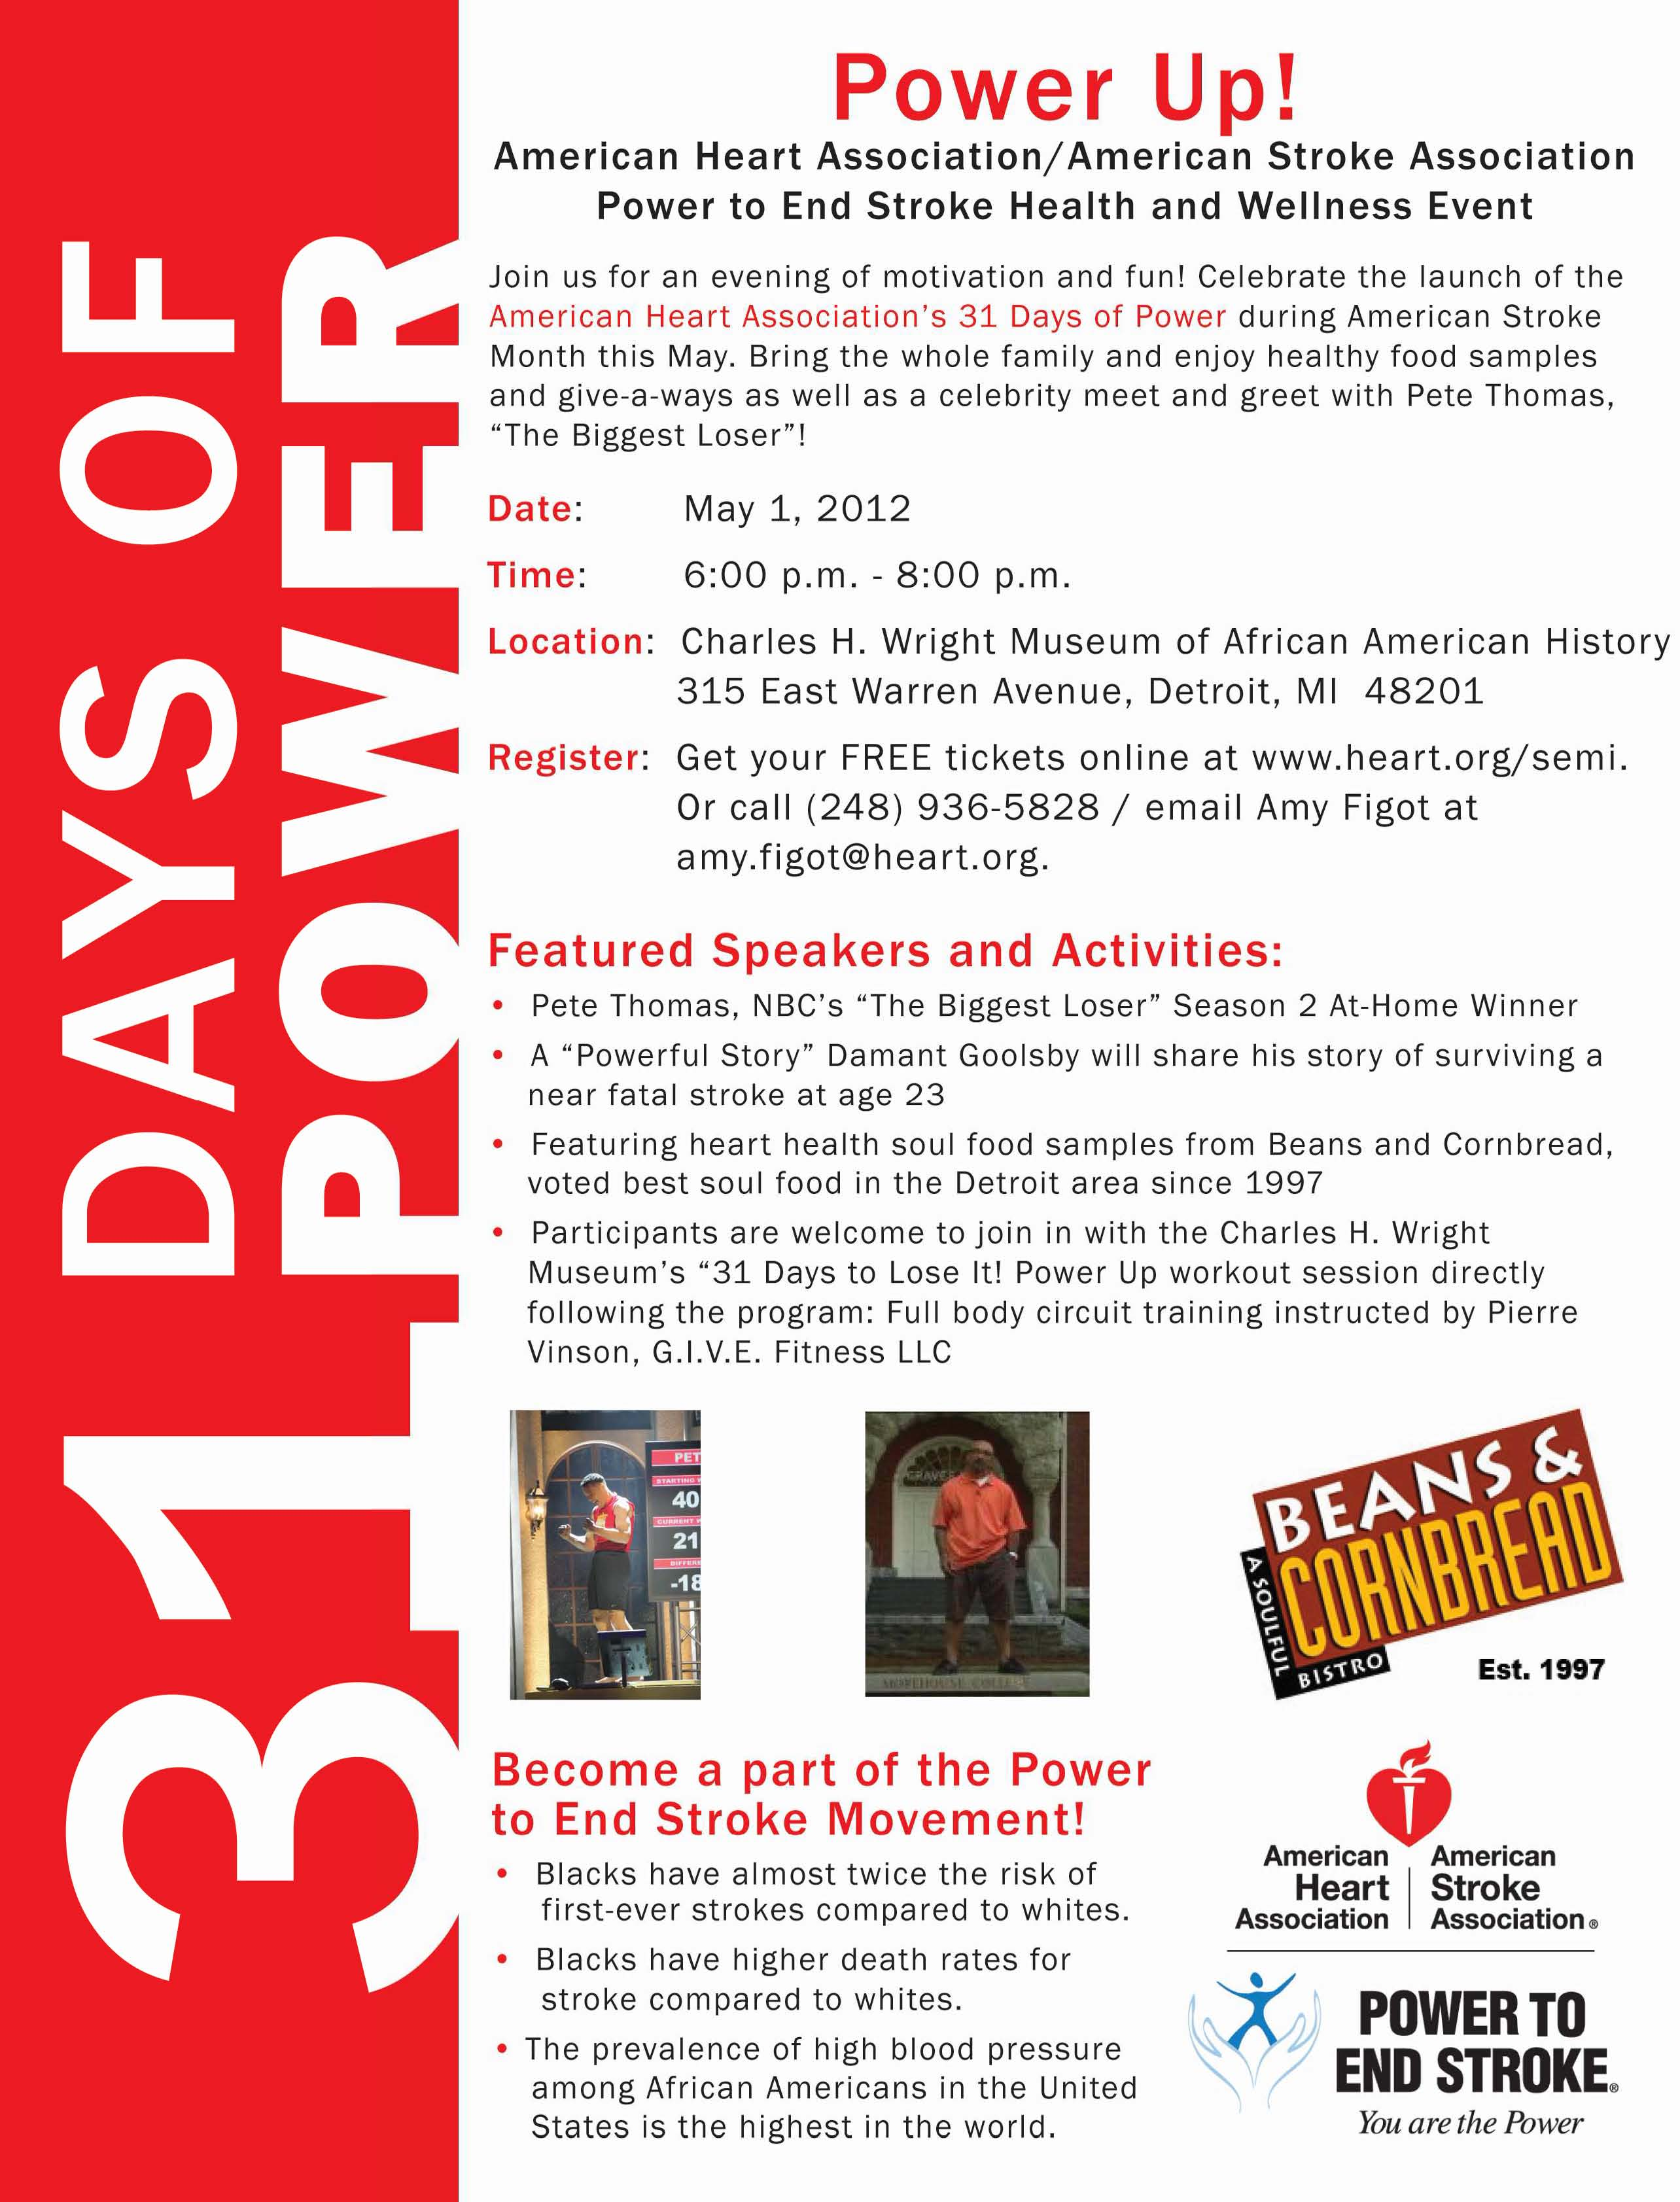 AHA Power Up! 31 Days of Power Launch Event at MAAH